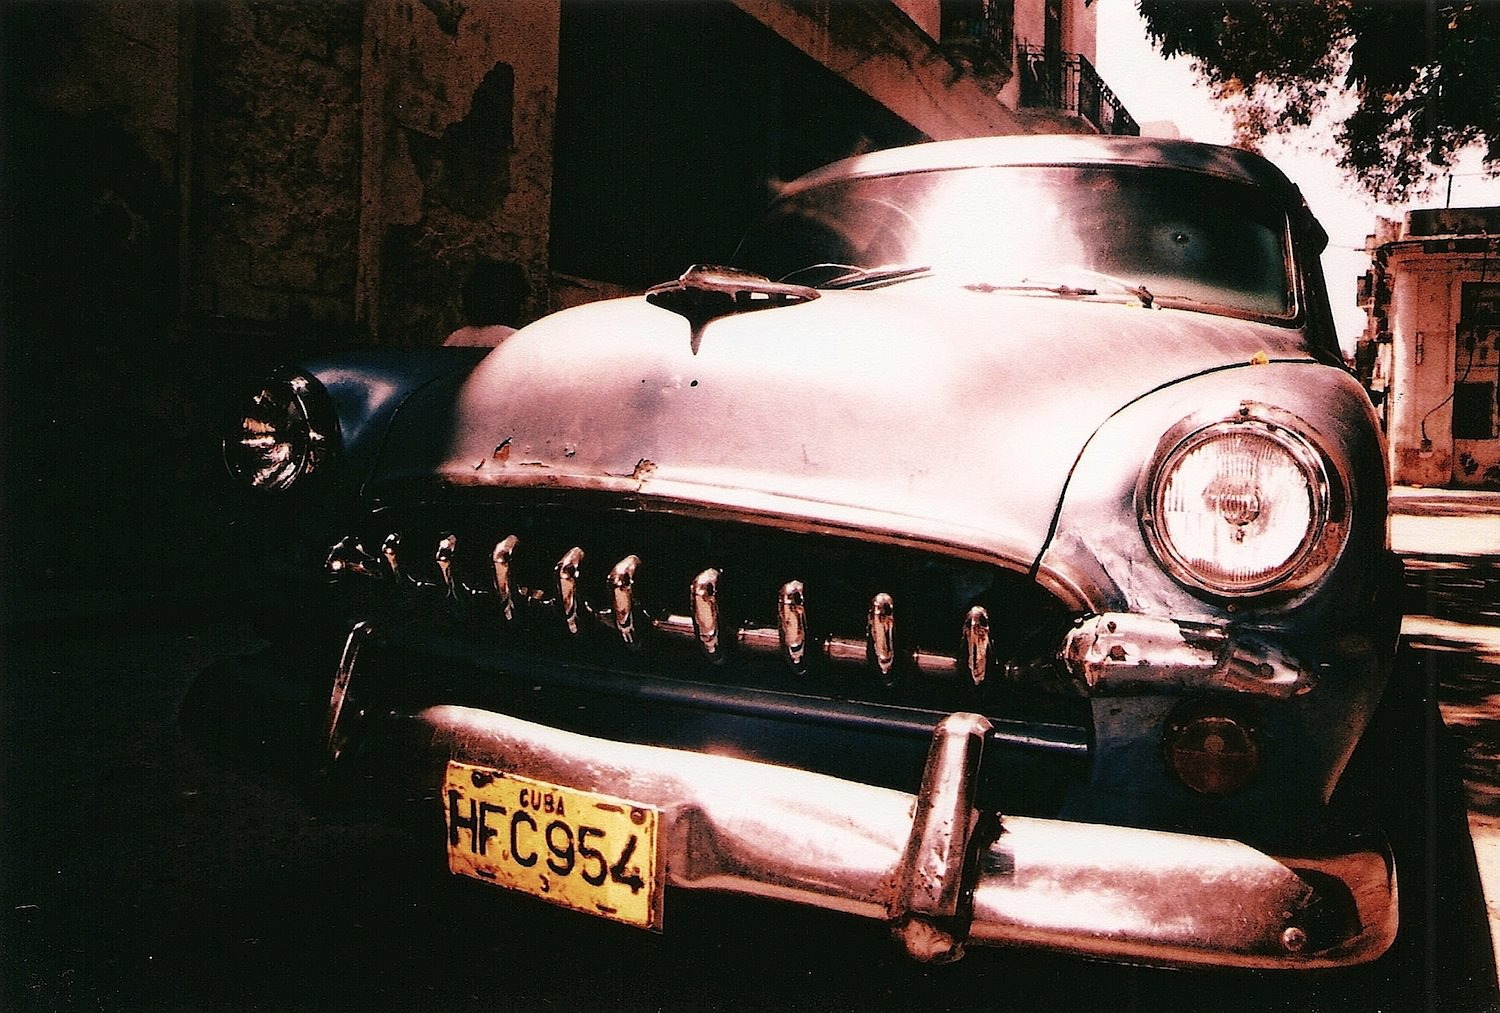 Havana is postcarded by classic American cars, remnants of the capitalist regime, the gangster decades of post-World War Two, when the island was a hub for rum, sugar and casinos.